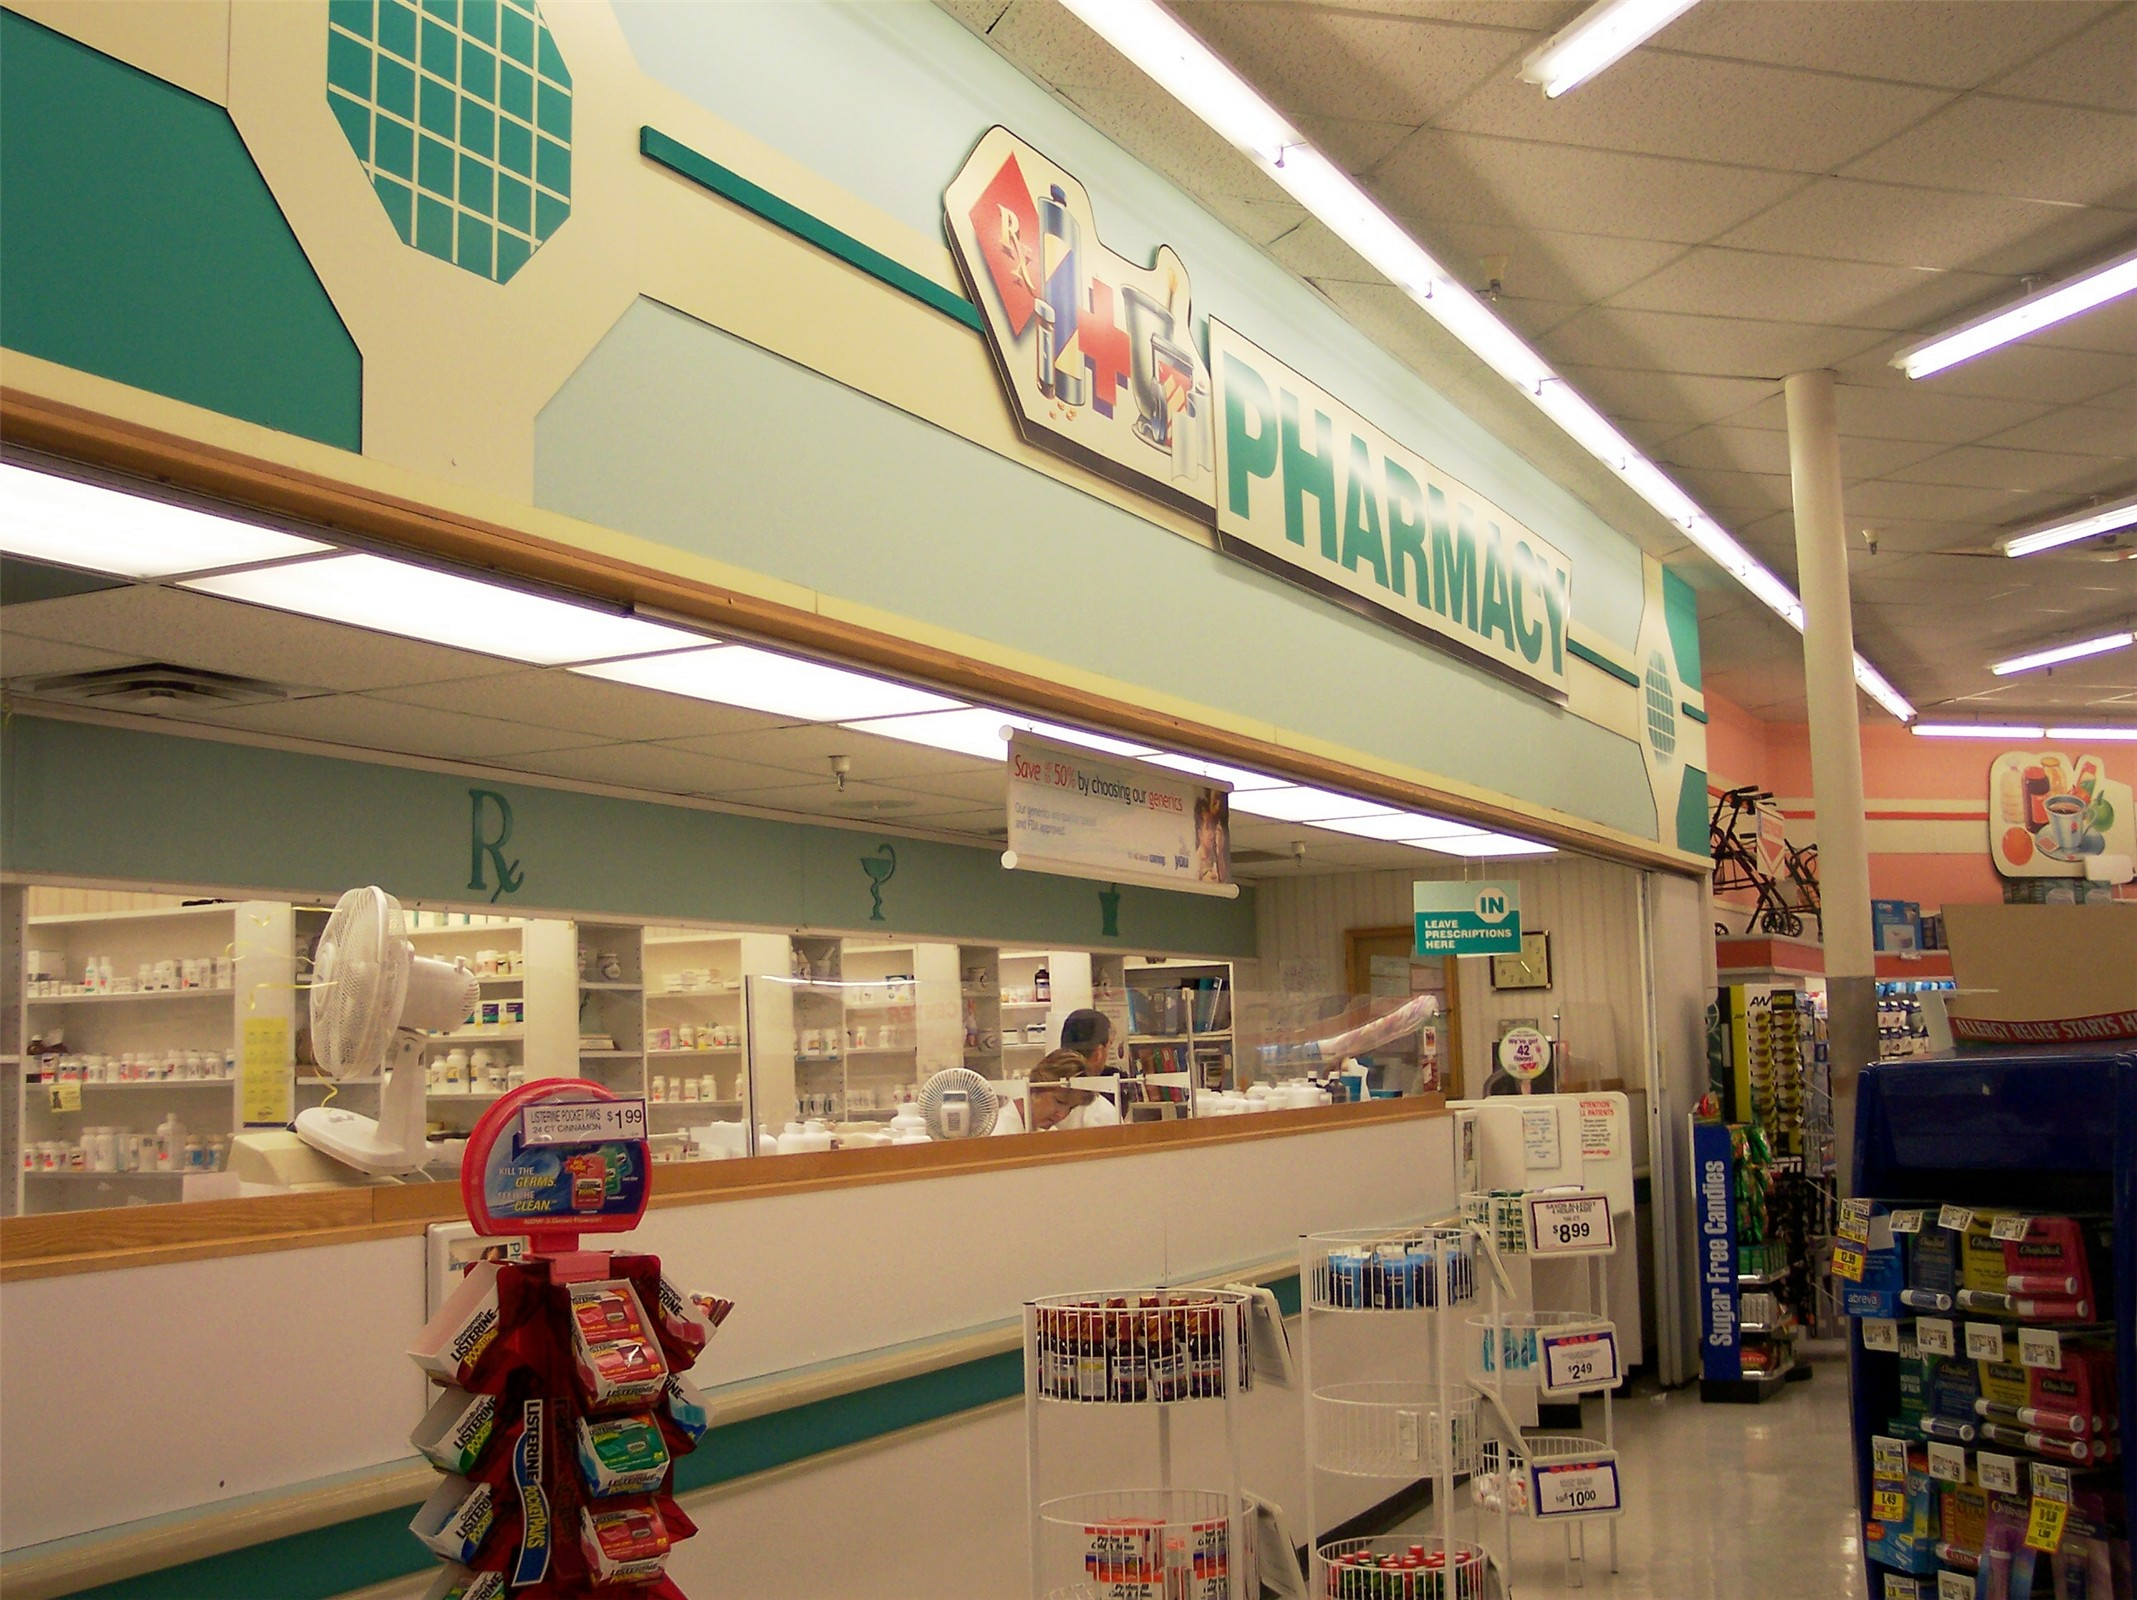 The National Association of Chain Drug Stores wants to see pharmacists recognized as health care providers.